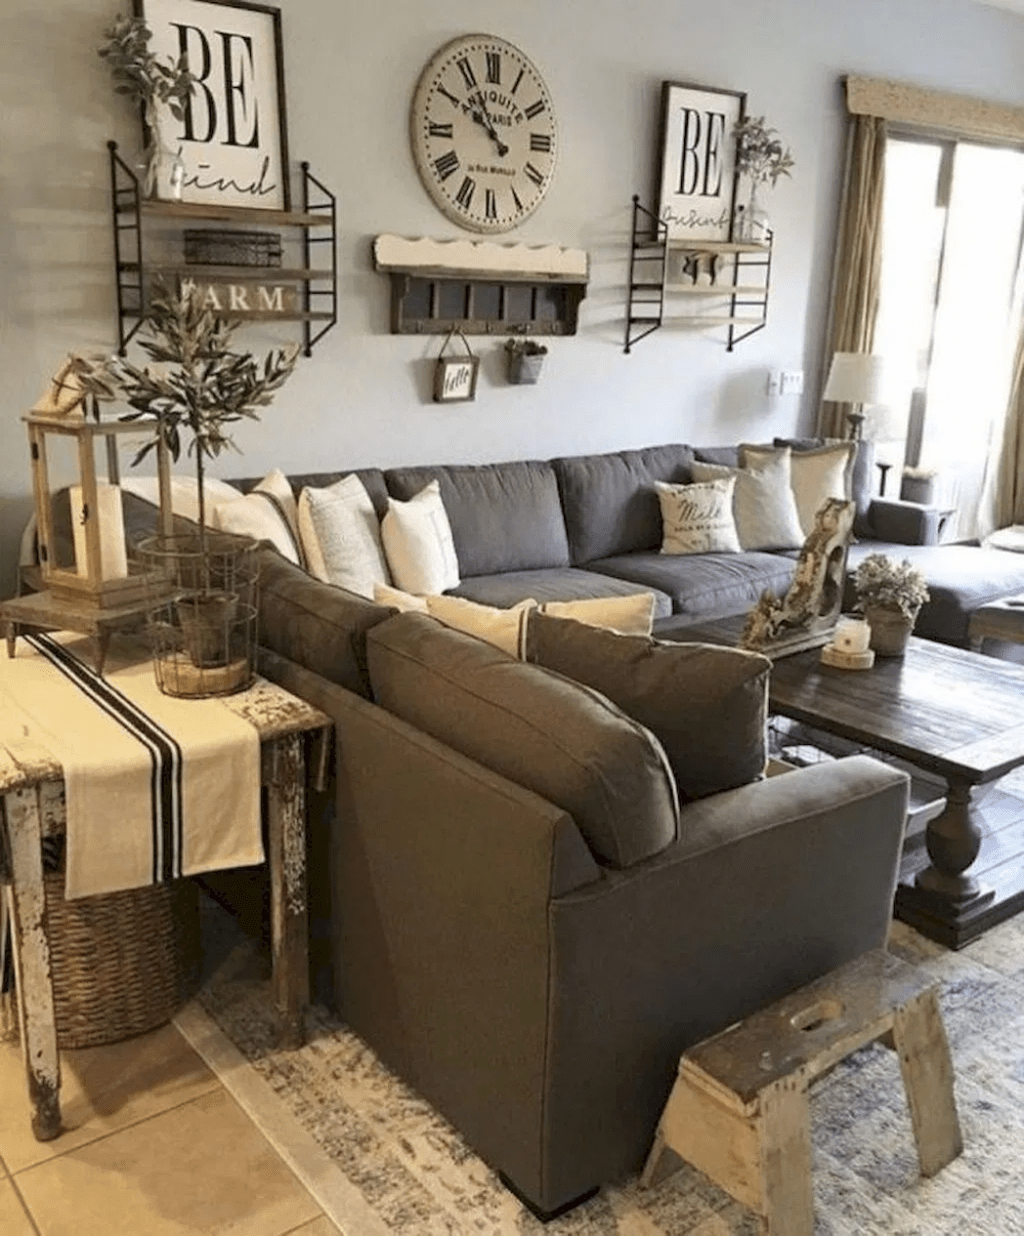 31 Nice Rustic Farmhouse Living Room Design And Decor Ideas Farmhouse Style Living Room Small Apartment Living Room Affordable Living Rooms